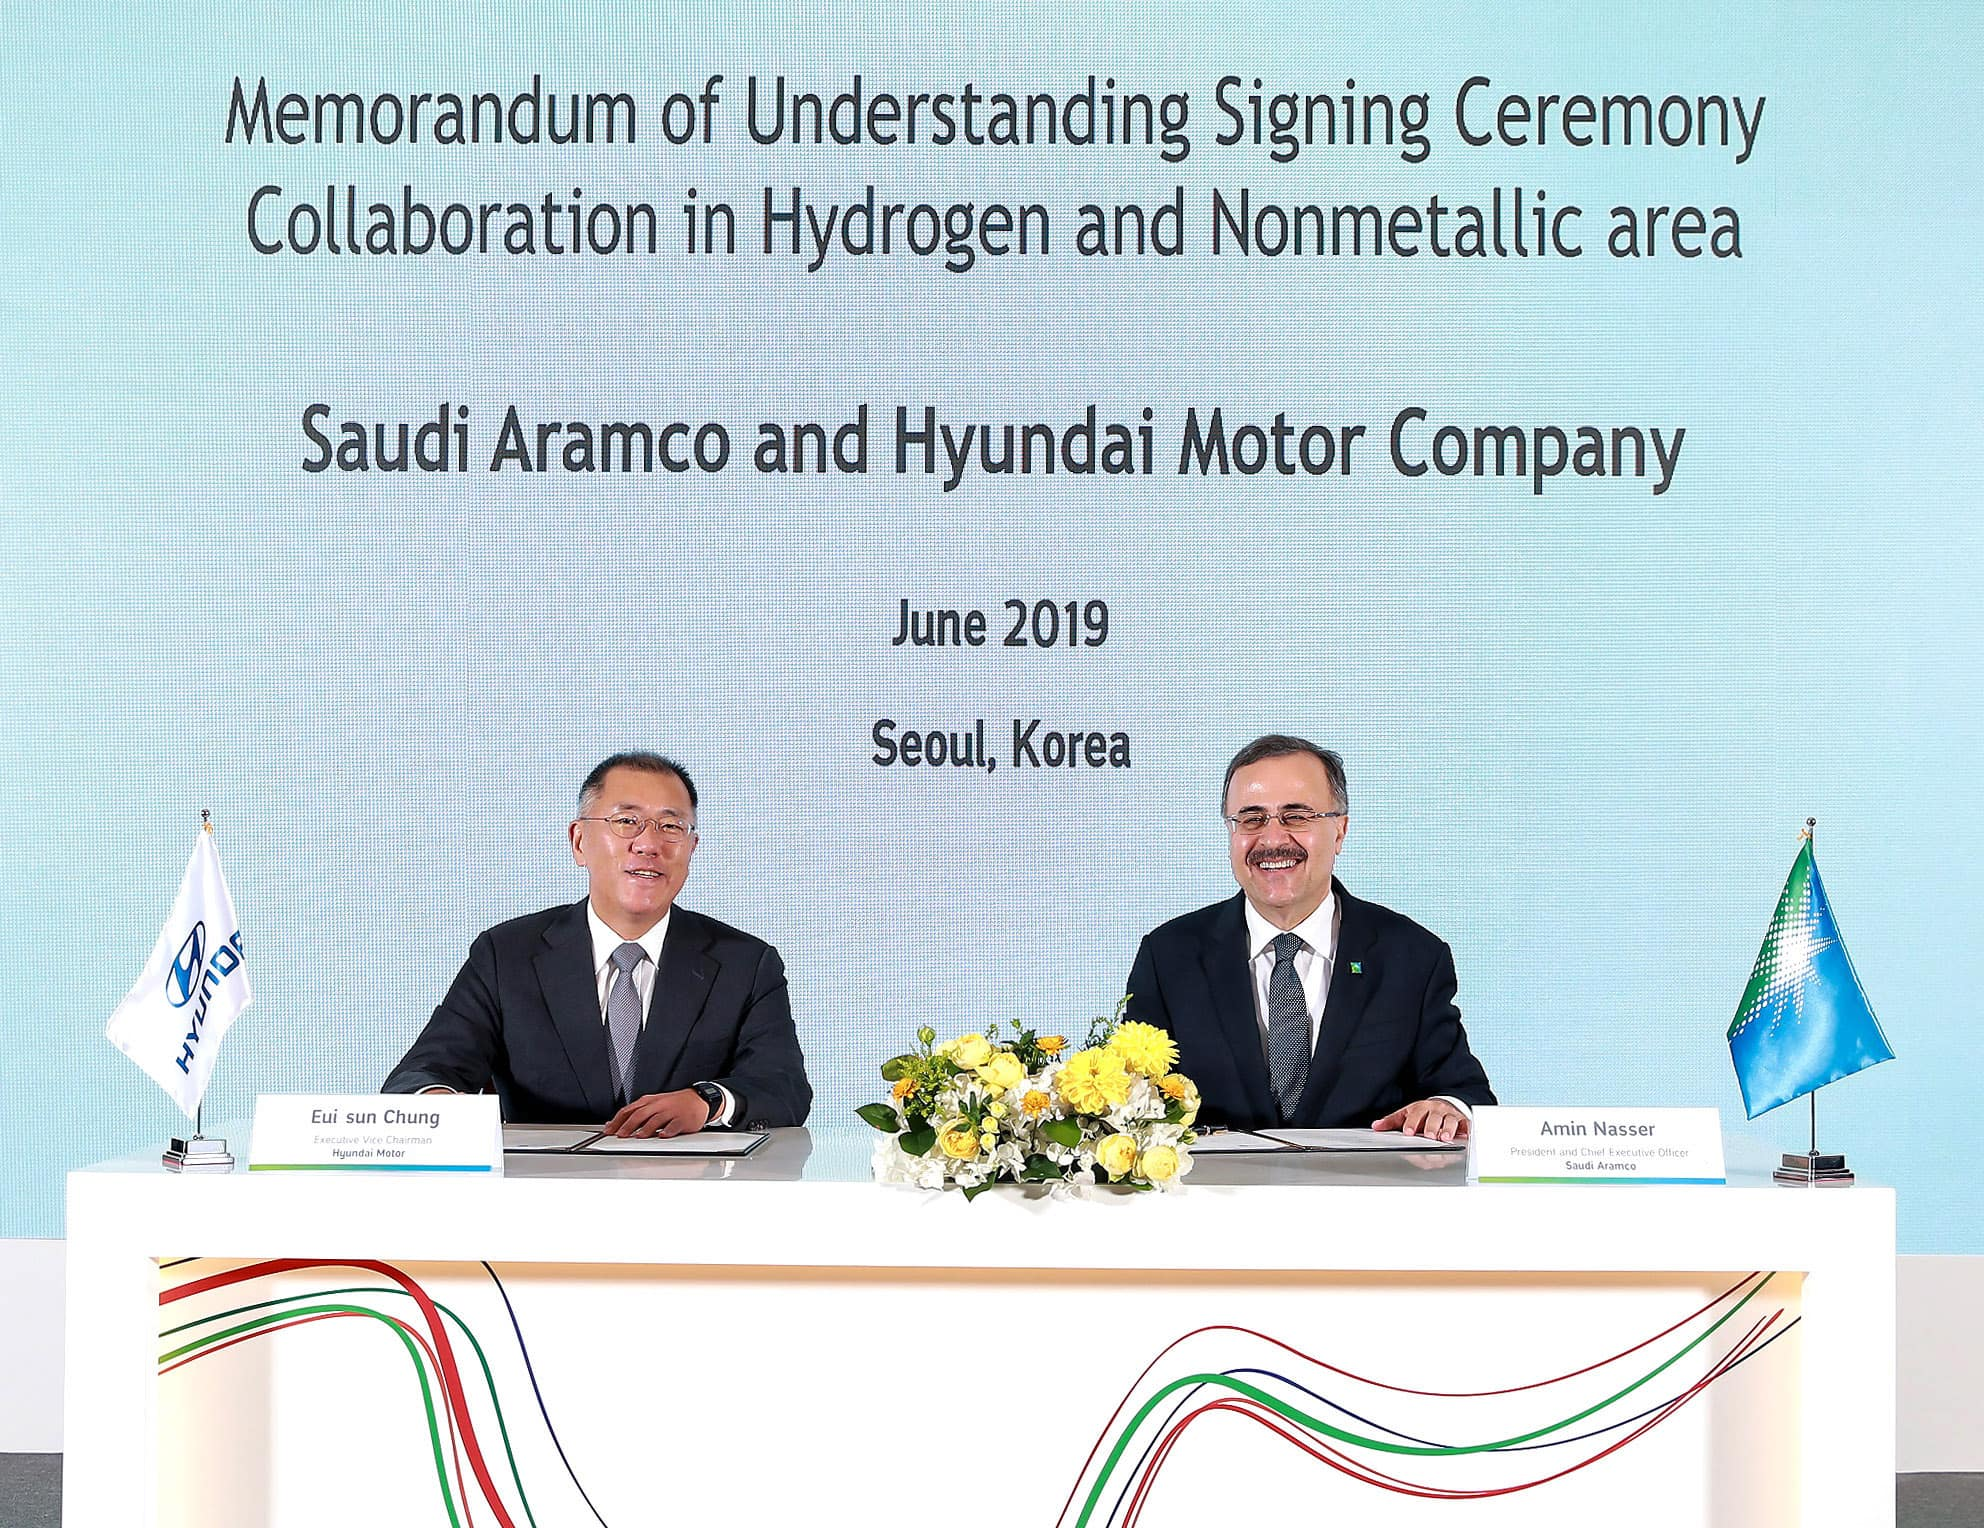 Hyundai Motor and Saudi Aramco to Collaborate on Hydrogen, Advanced non-metallic materials and Future Technologies